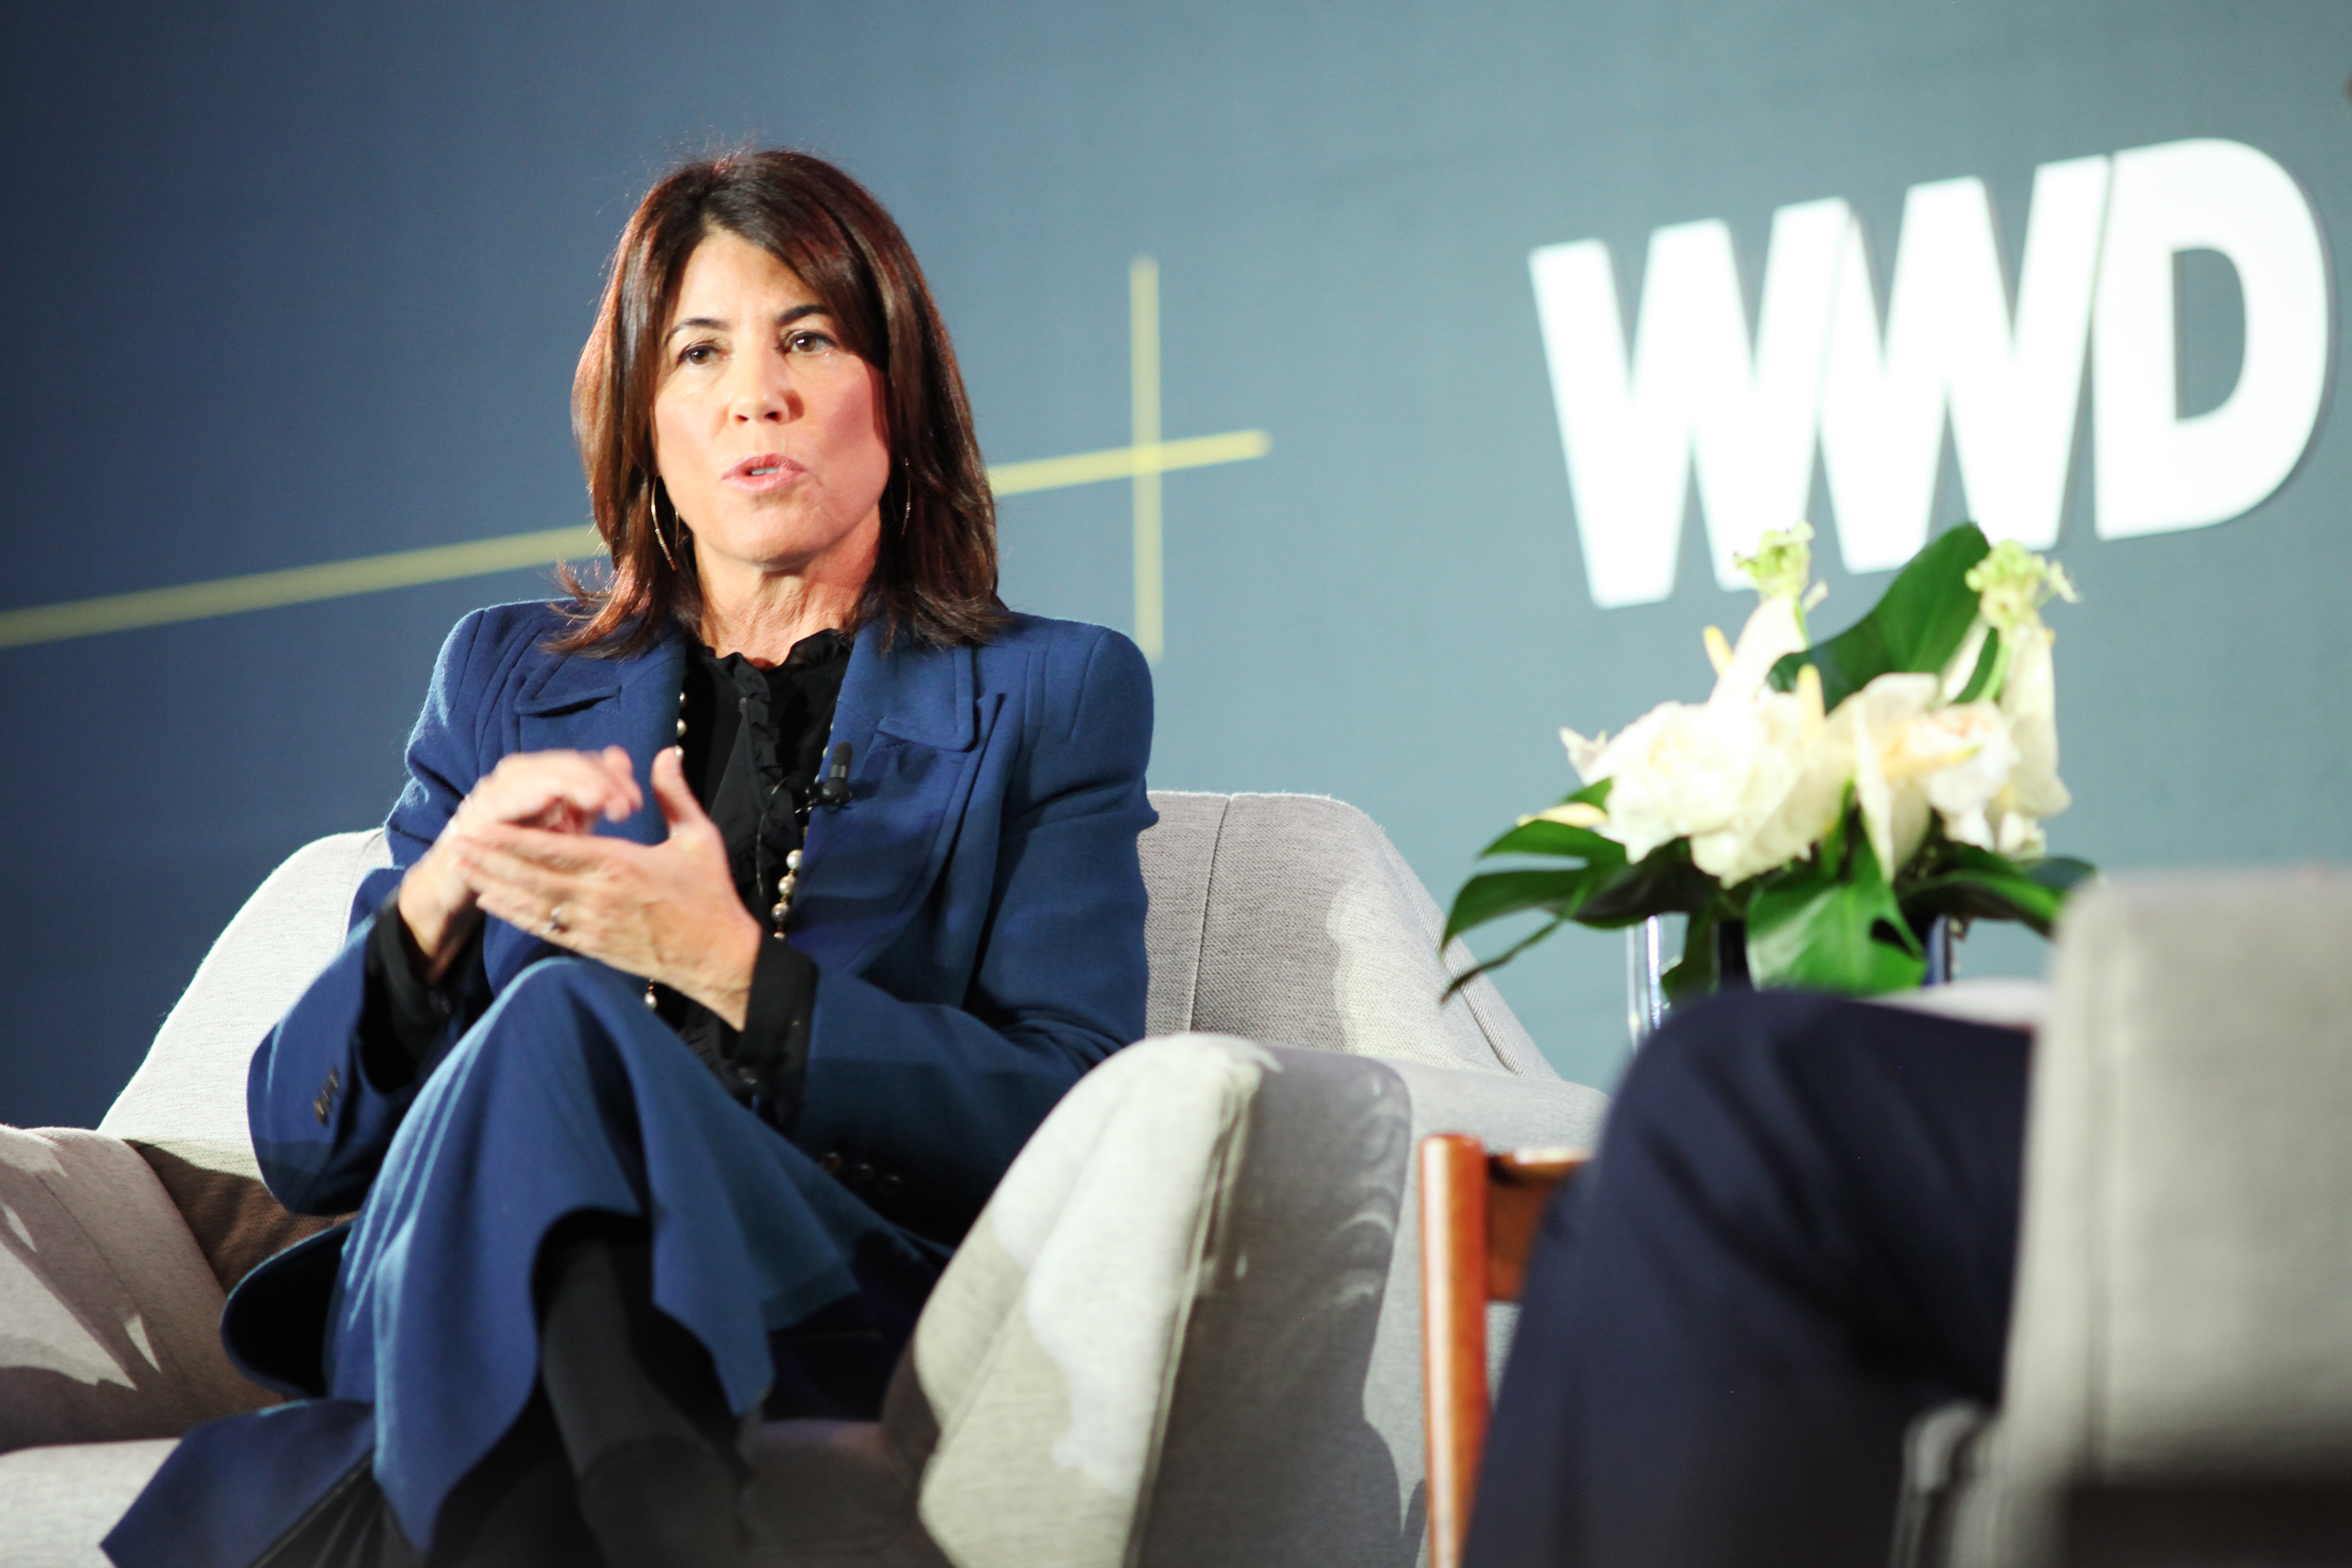 Helena FoulkesWWD Apparel and Retail CEO Summit: Movers and Makers, New York, USA - 29 Oct 2019